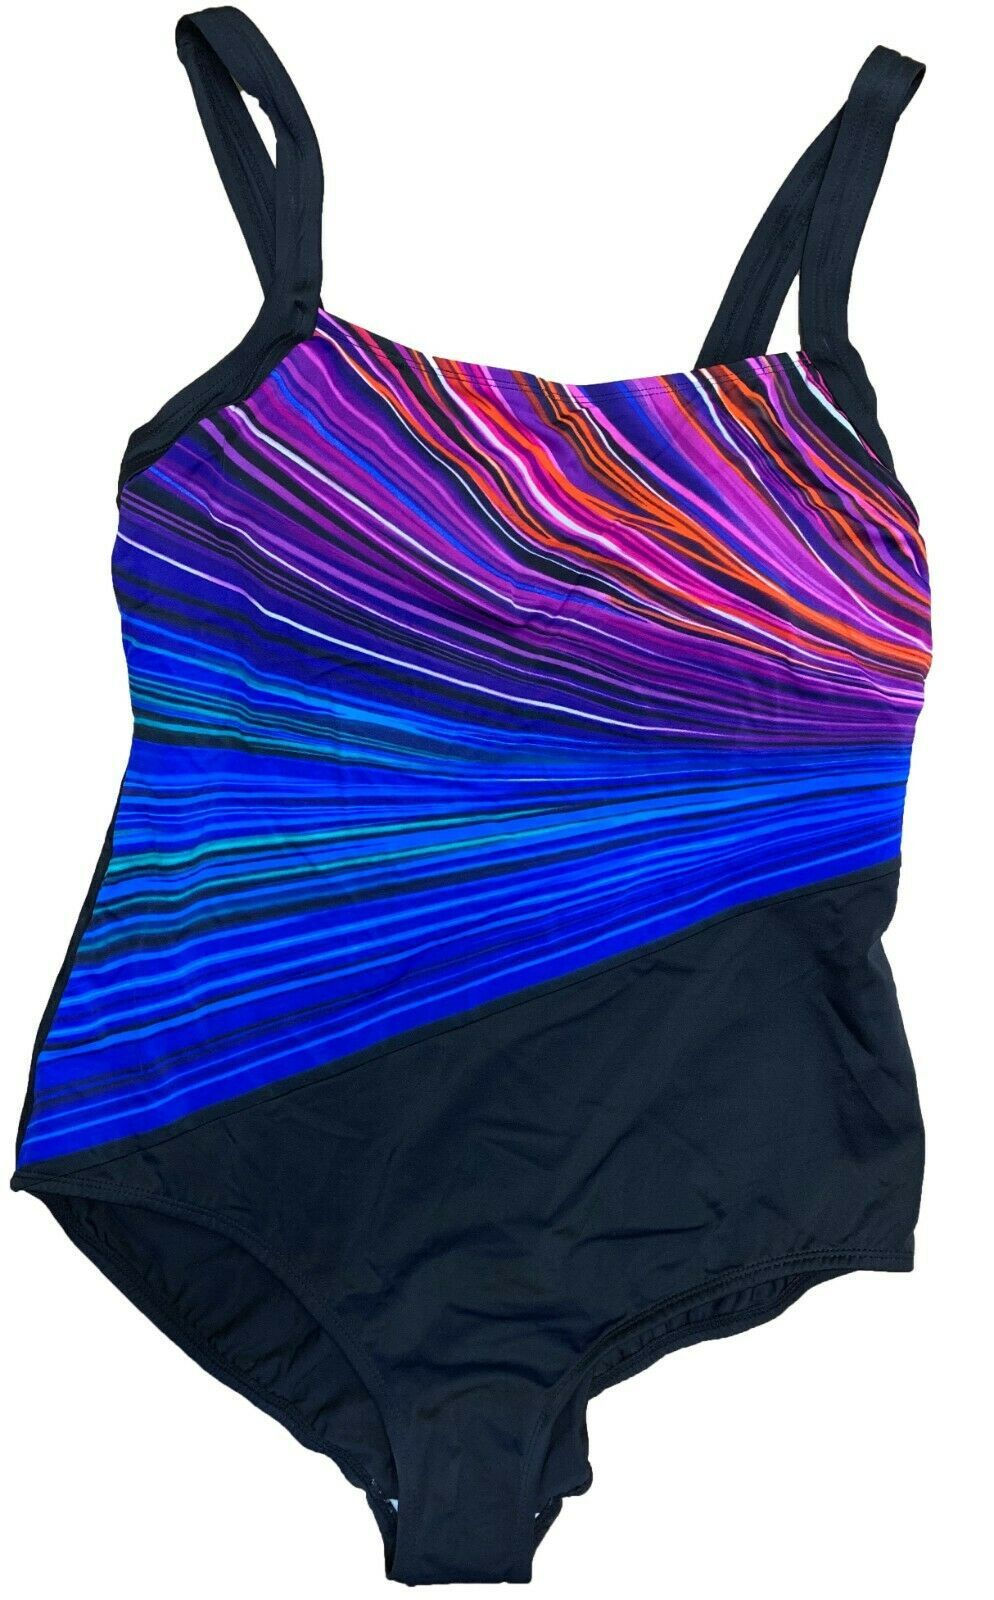 Primary image for Reebok Women's Multi Colors then Black One Piece Swimsuit Multi Colors/Black